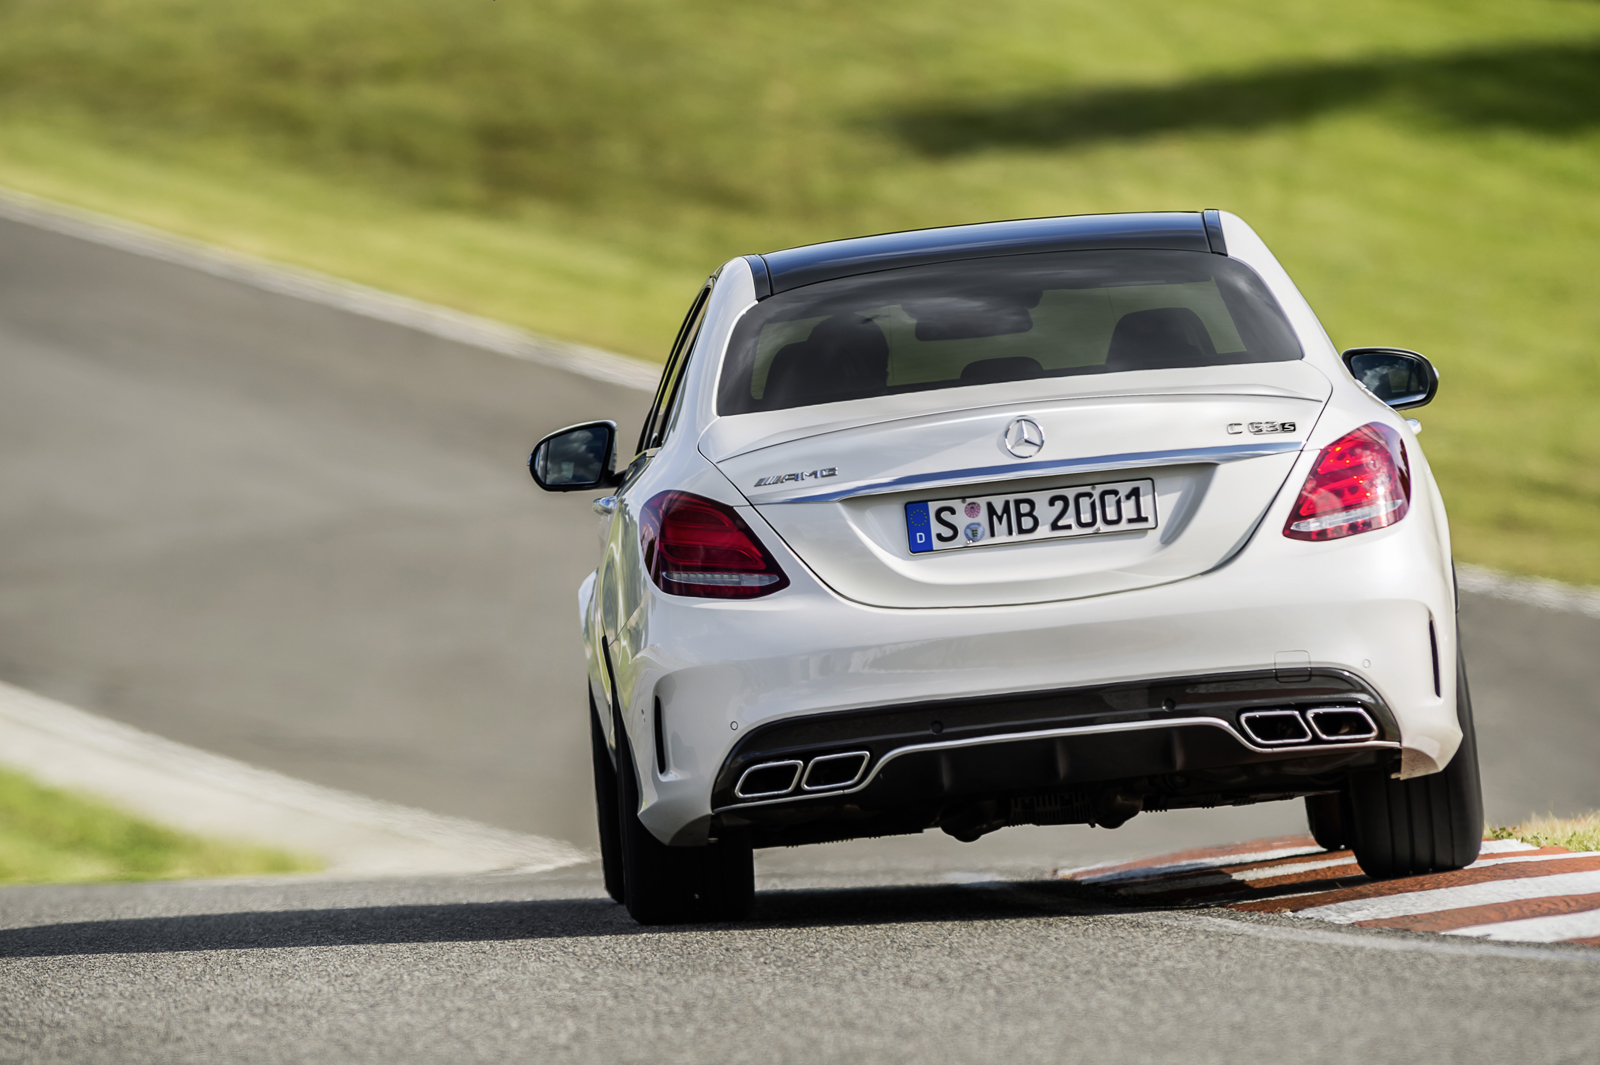 mercedes-amg-c63-saloon-paris-2014-mercedesblog-104